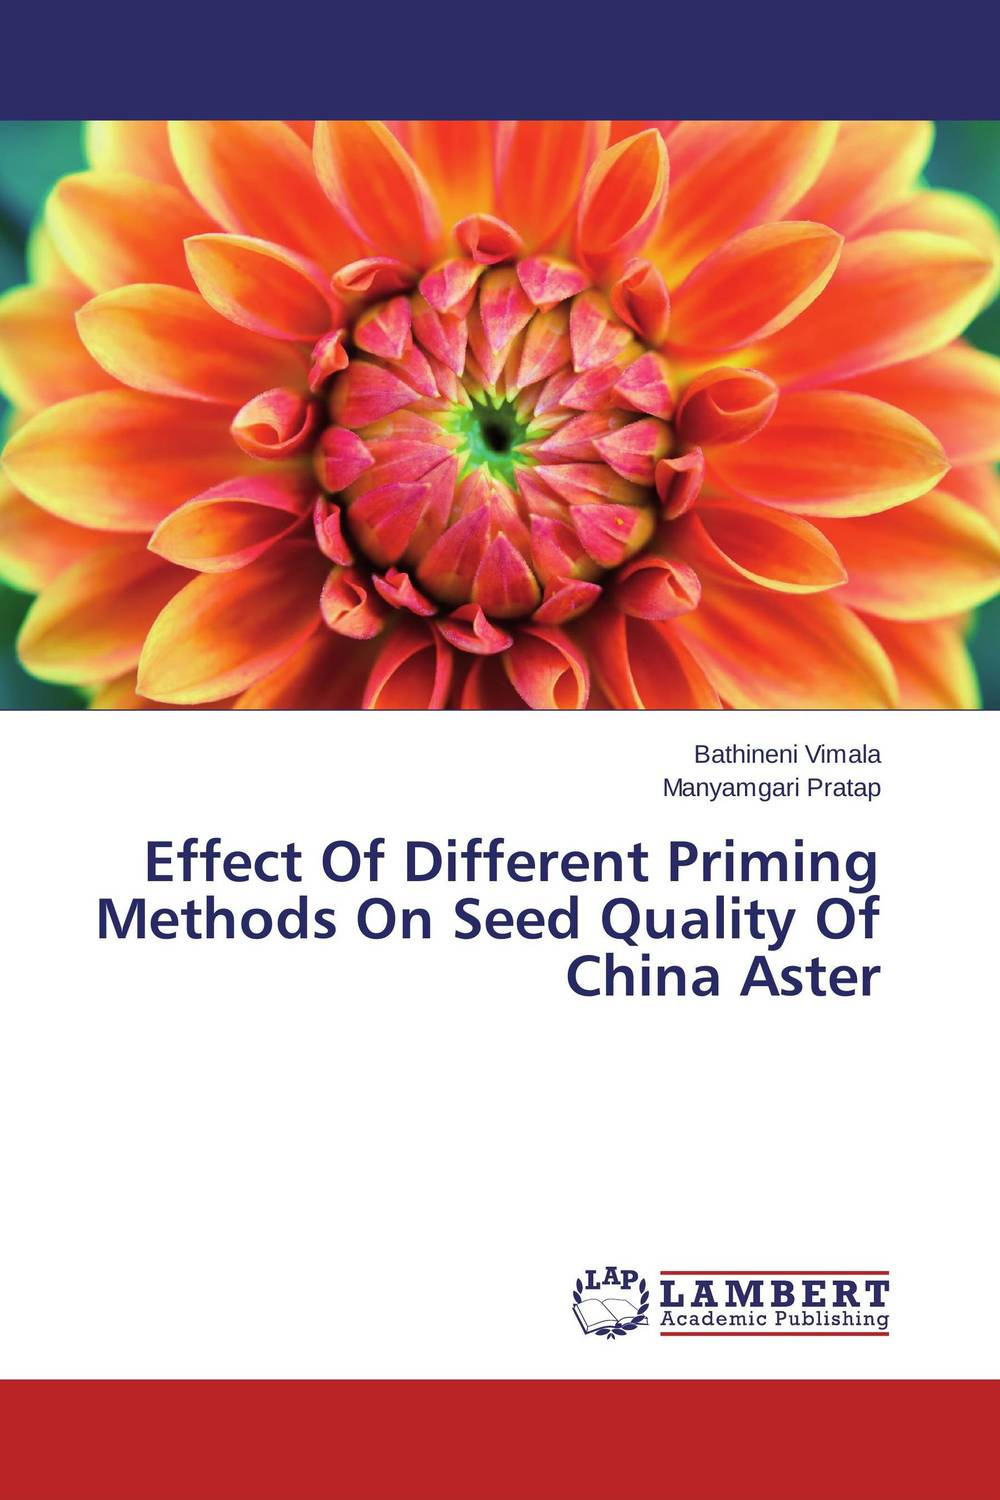 Effect Of Different Priming Methods On Seed Quality Of China Aster belousov a security features of banknotes and other documents methods of authentication manual денежные билеты бланки ценных бумаг и документов